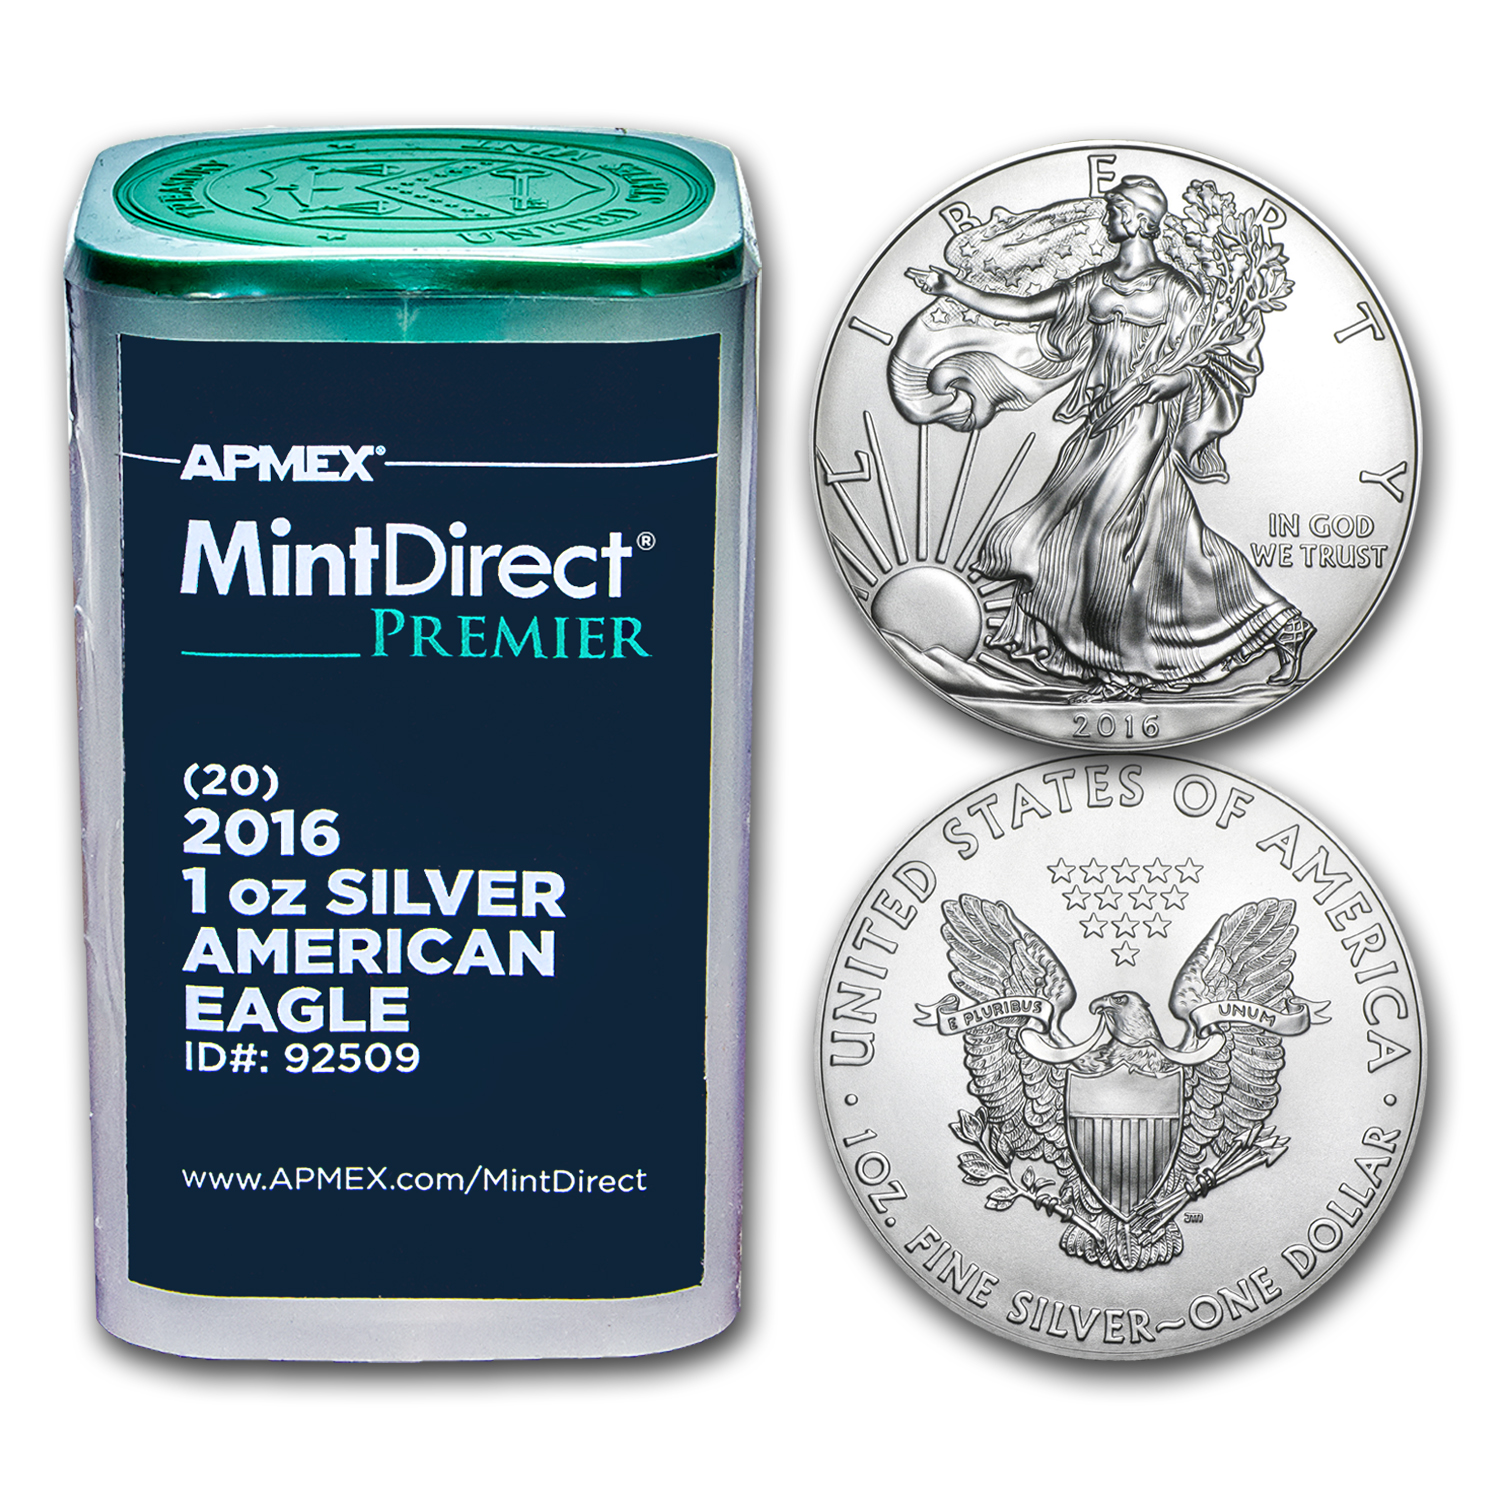 2016 1 oz Silver Eagles (20-Coin MintDirect® Premier Tube)